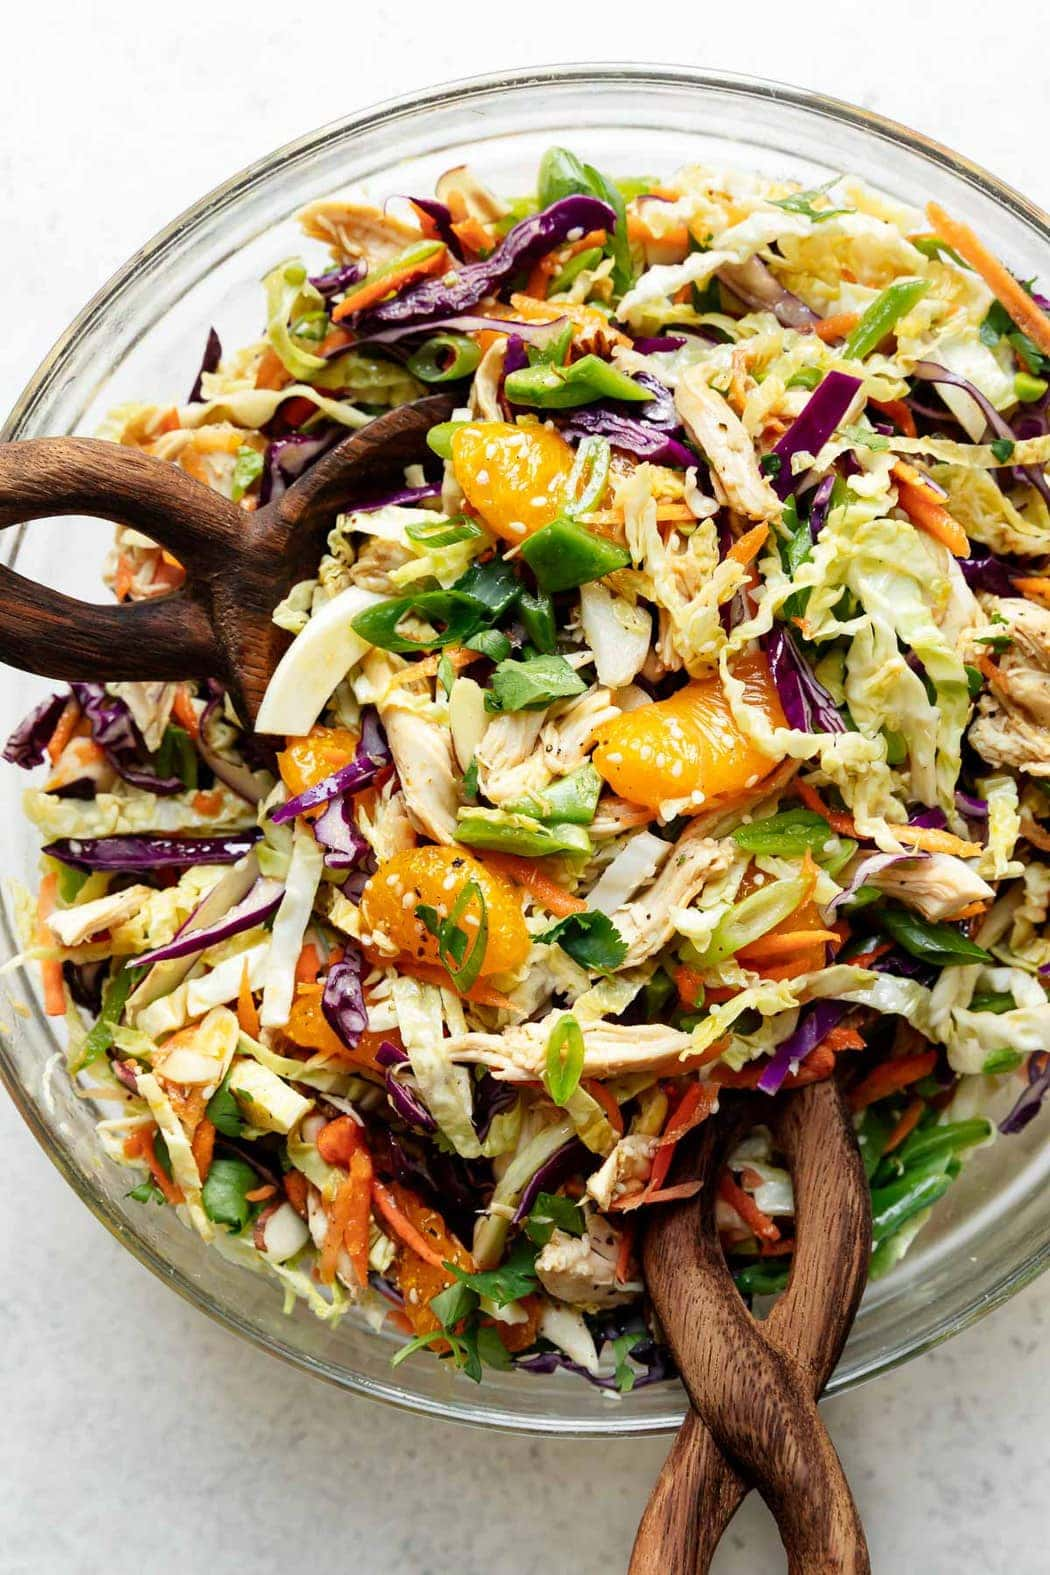 A large serving bowl filled with mandarin orange chicken salad with two wooden handled salad spoons in the salad